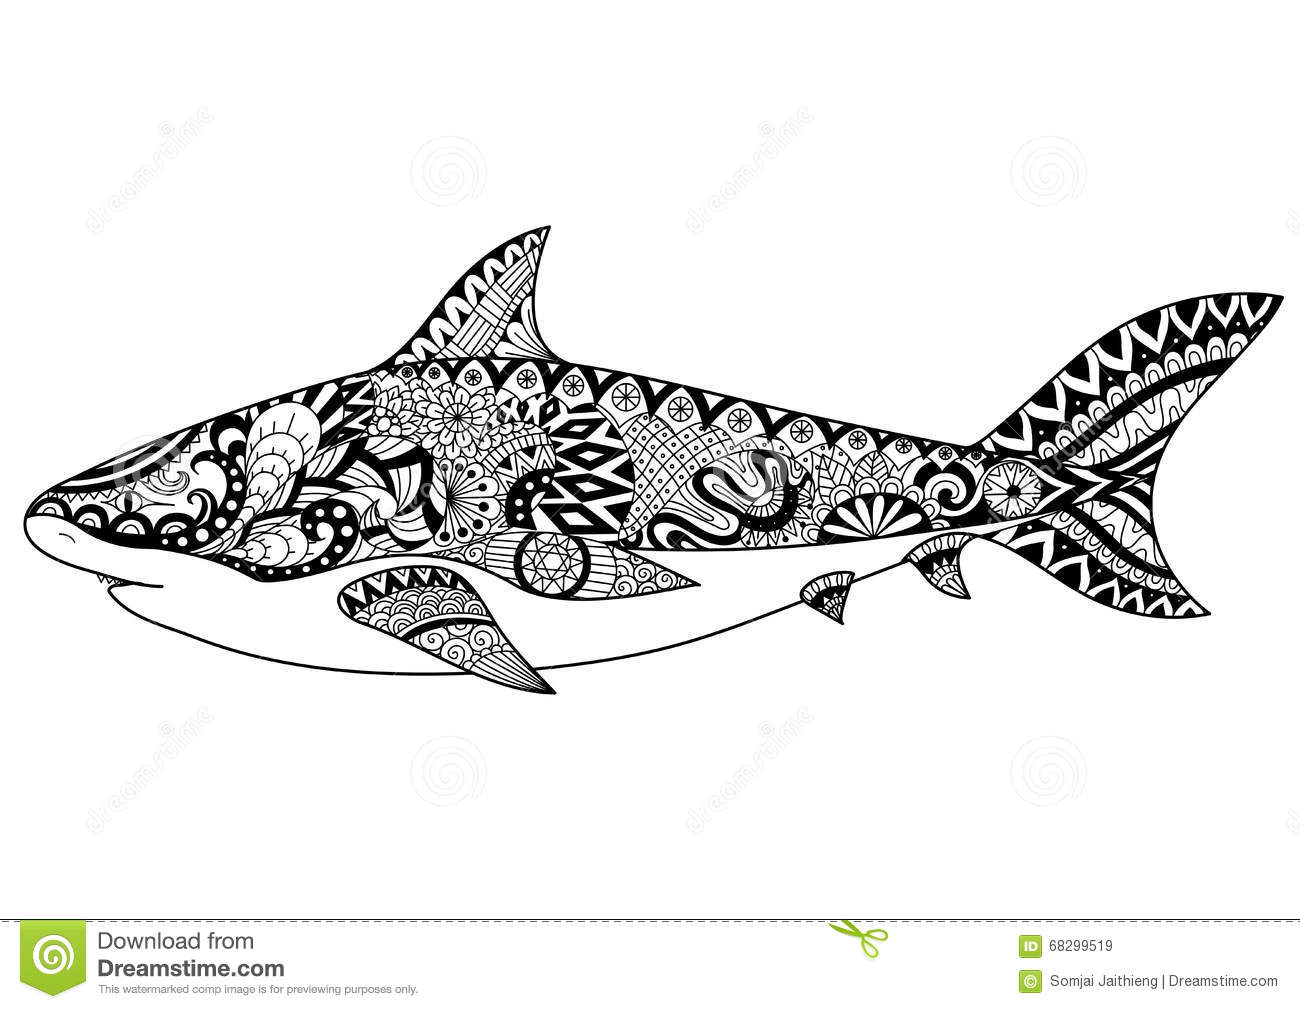 Shark Line Art Design For Coloring Book For Adult Tattoo